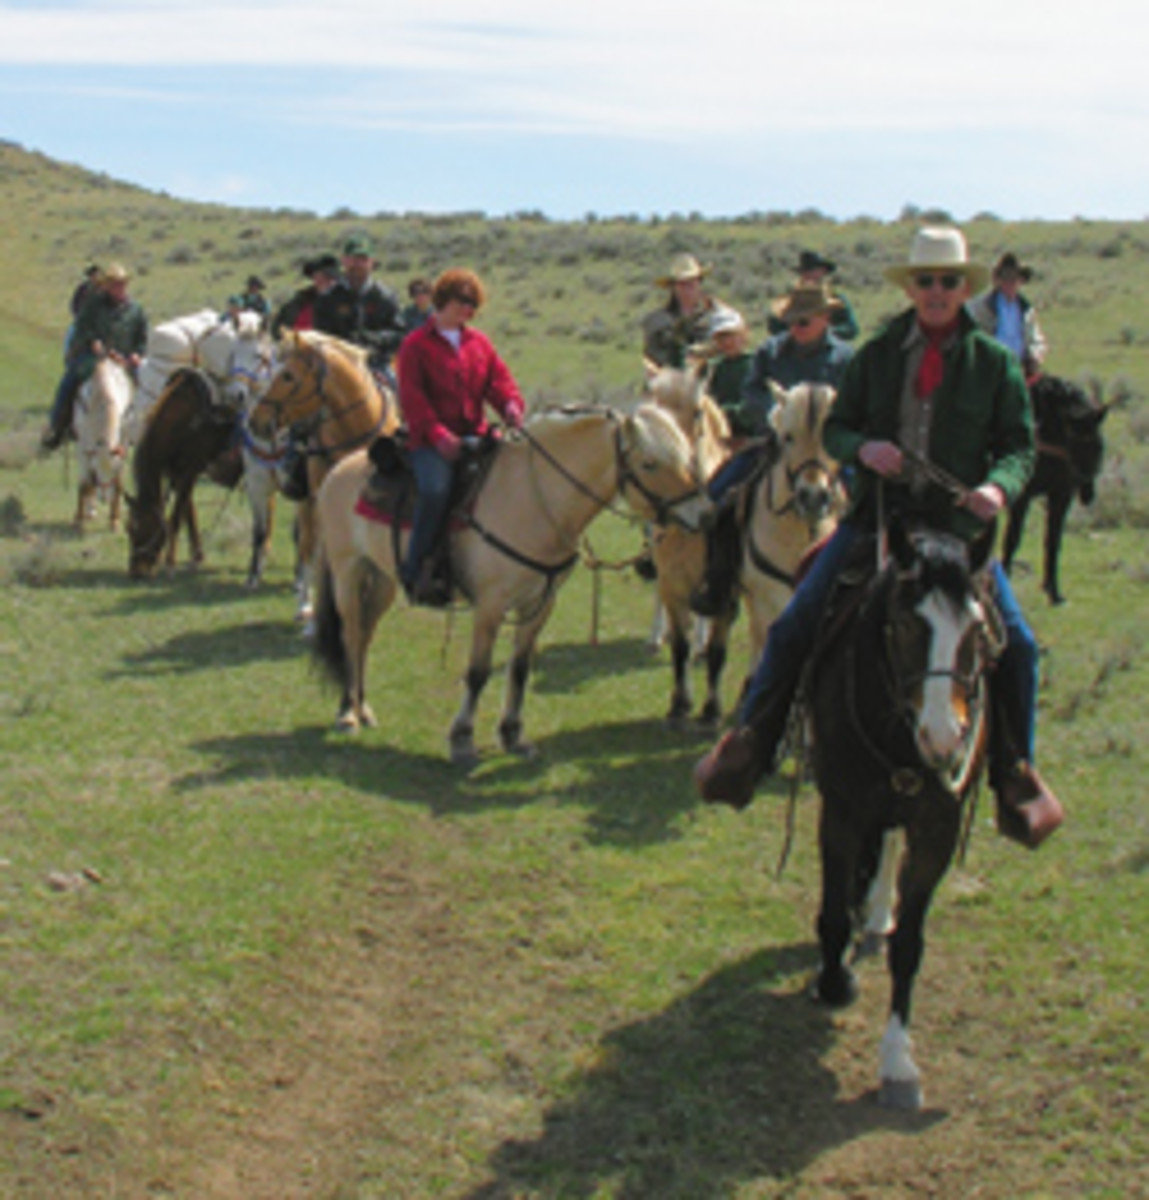 Like Chaucer's Pilgrims, most riders itch to get onto the trail in the spring. But spring can be two-sided for trail riders. Along with its joys, there are hazards and cautions. | Photos by Dan Aadland